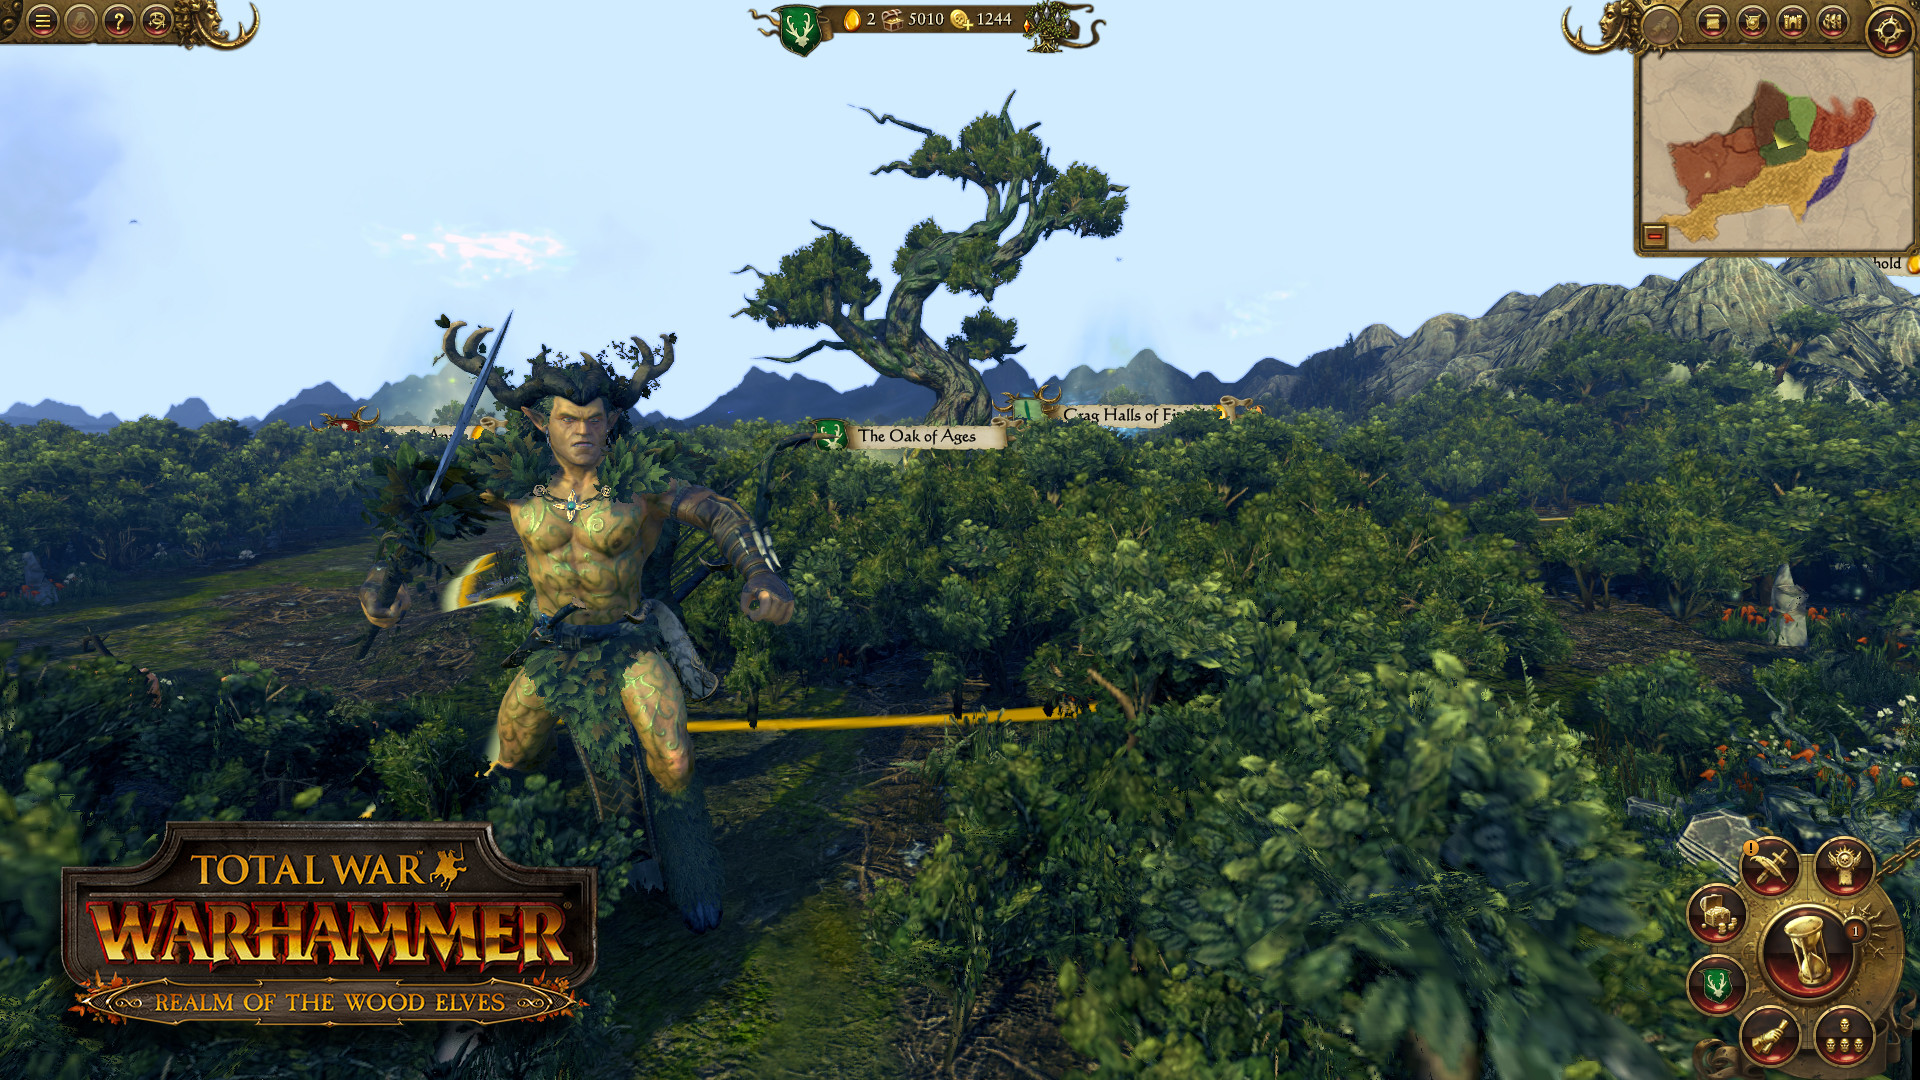 Total War: Warhammer - Realm of the Wood Elves Screenshot